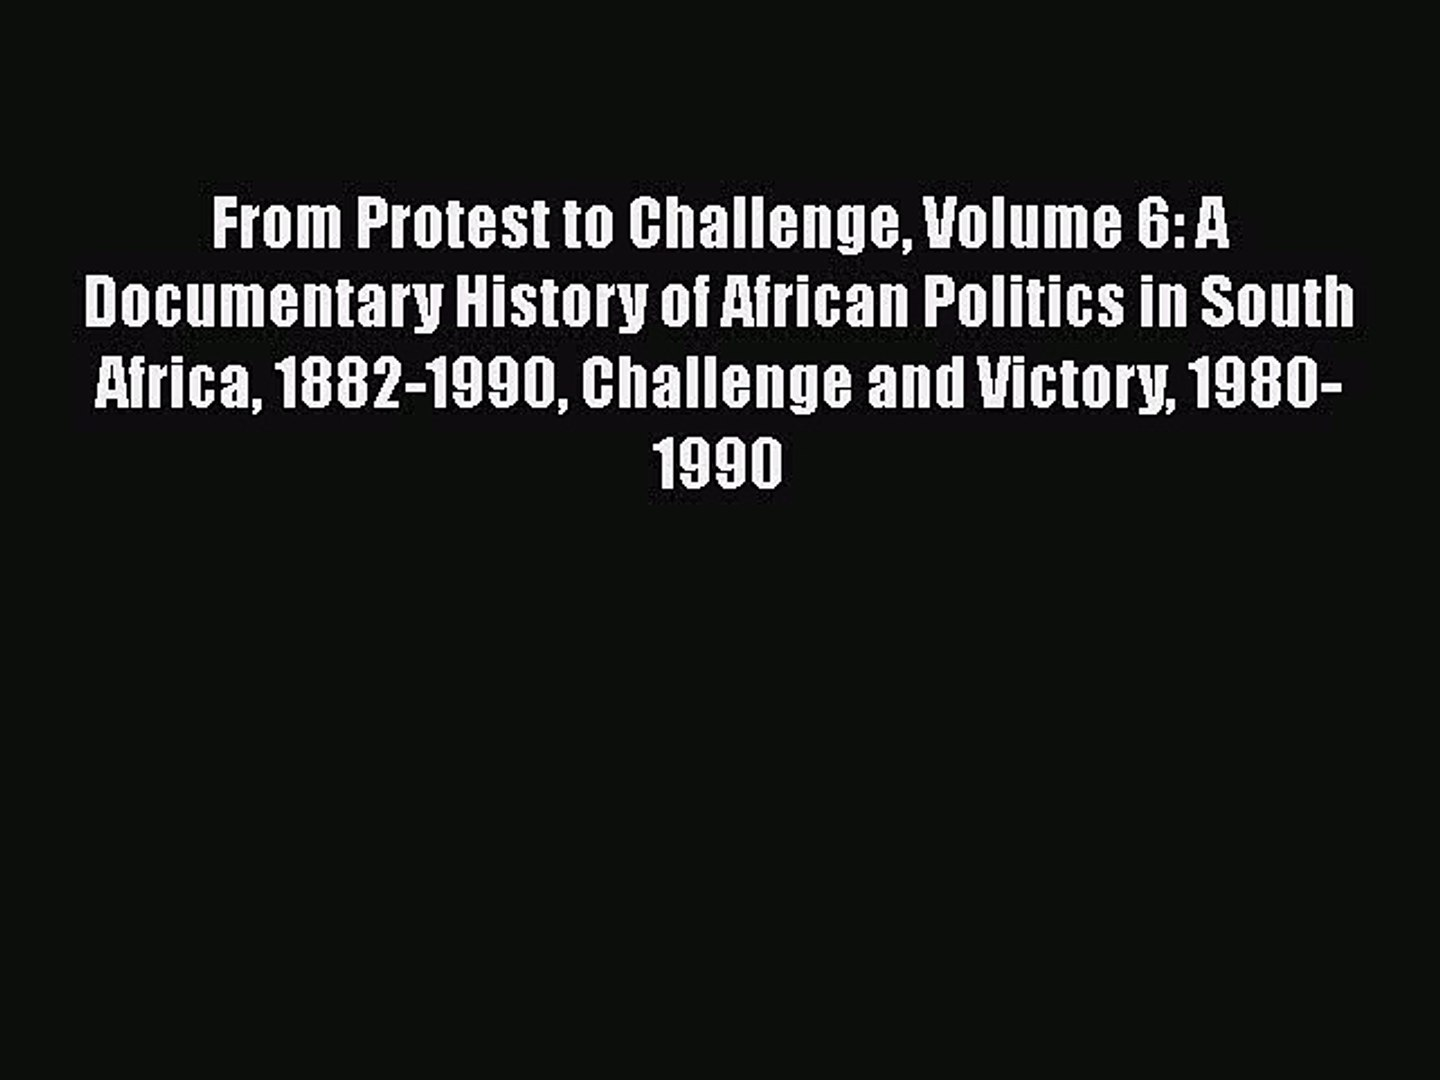 [Read book] From Protest to Challenge Volume 6: A Documentary History of African Politics in